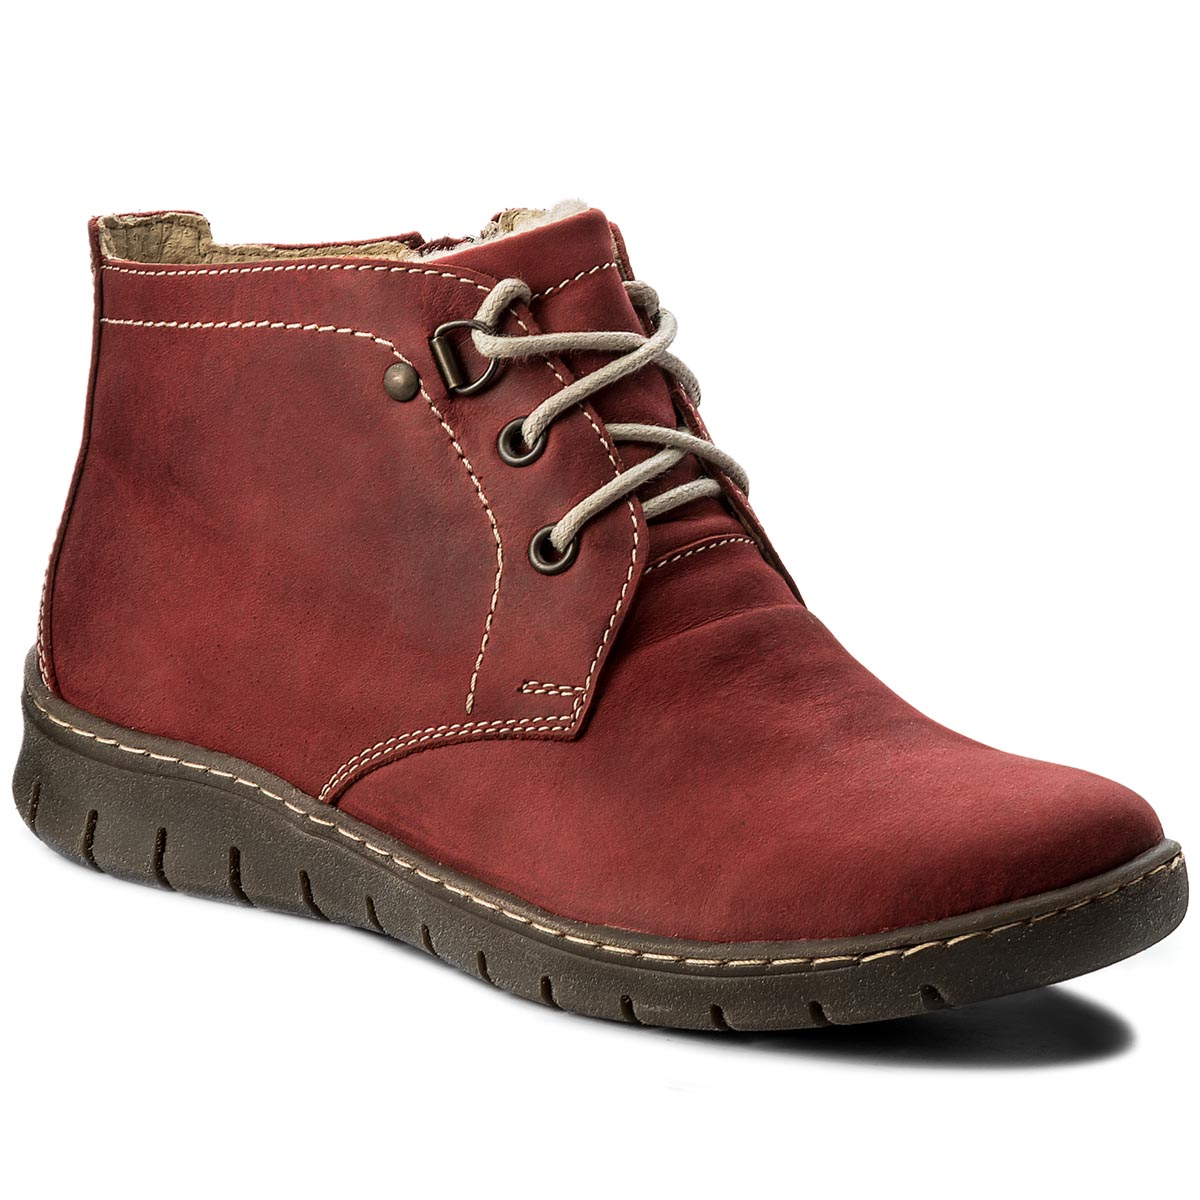 Bottines HELIOS - 501 Bordo